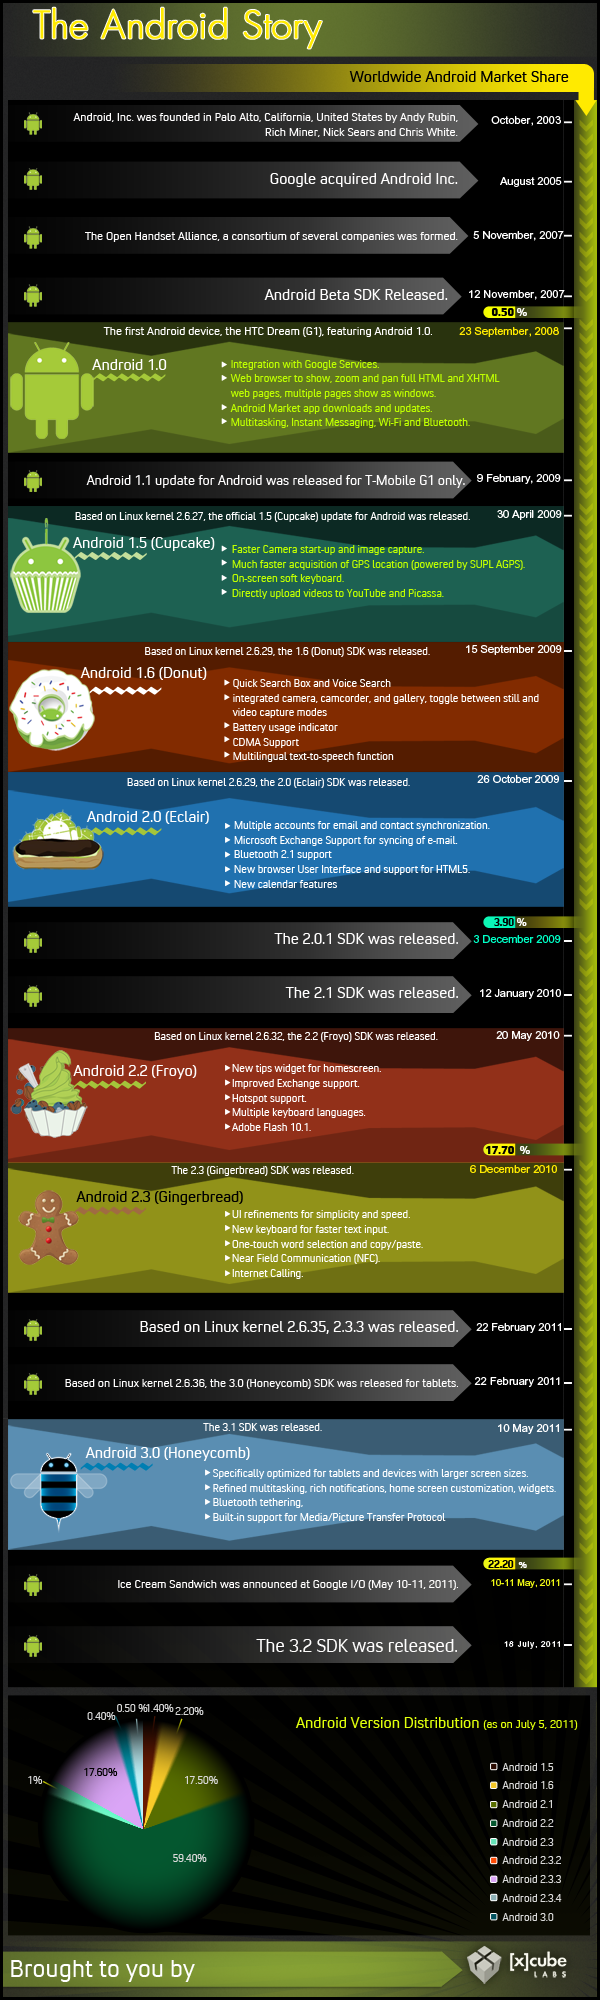 The History Of Android OS (Infographic)